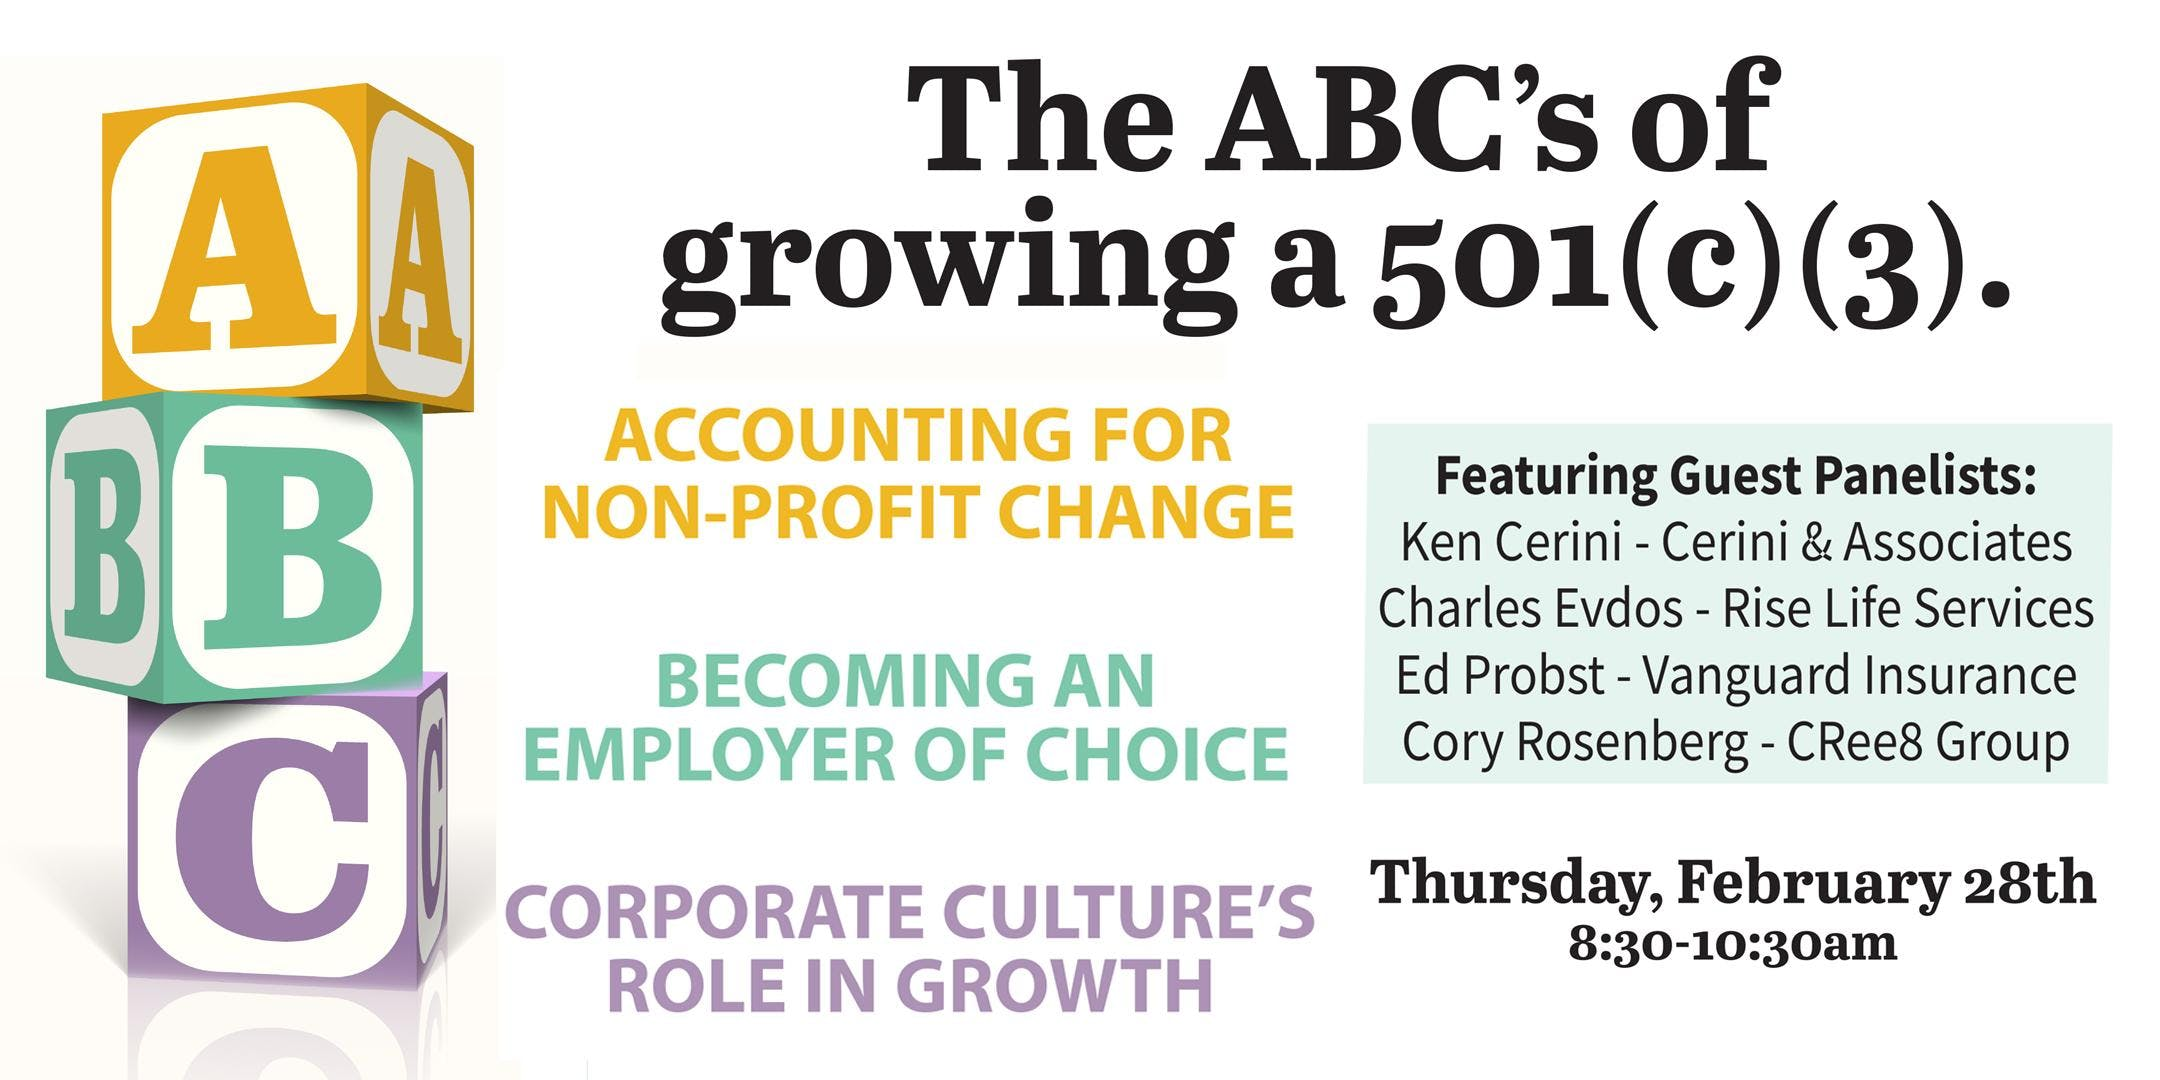 The ABC's of Growing Your 501(C)(3)